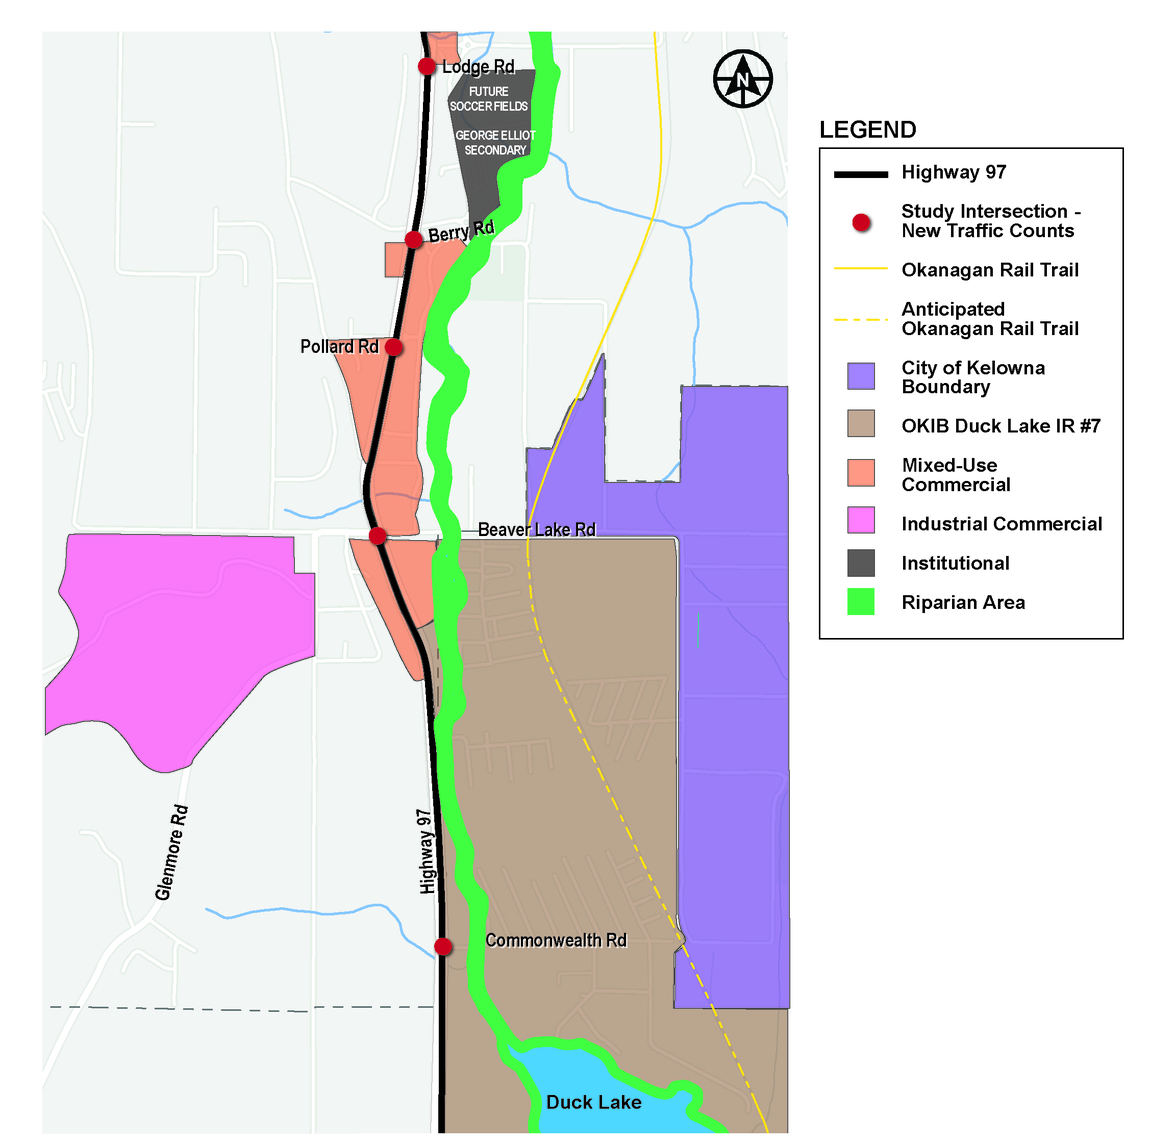 The ministry has begun a planning study to investigate and identify the future transportation needs of Highway 97 between Lodge Road and Duck Lake in Lake Country.